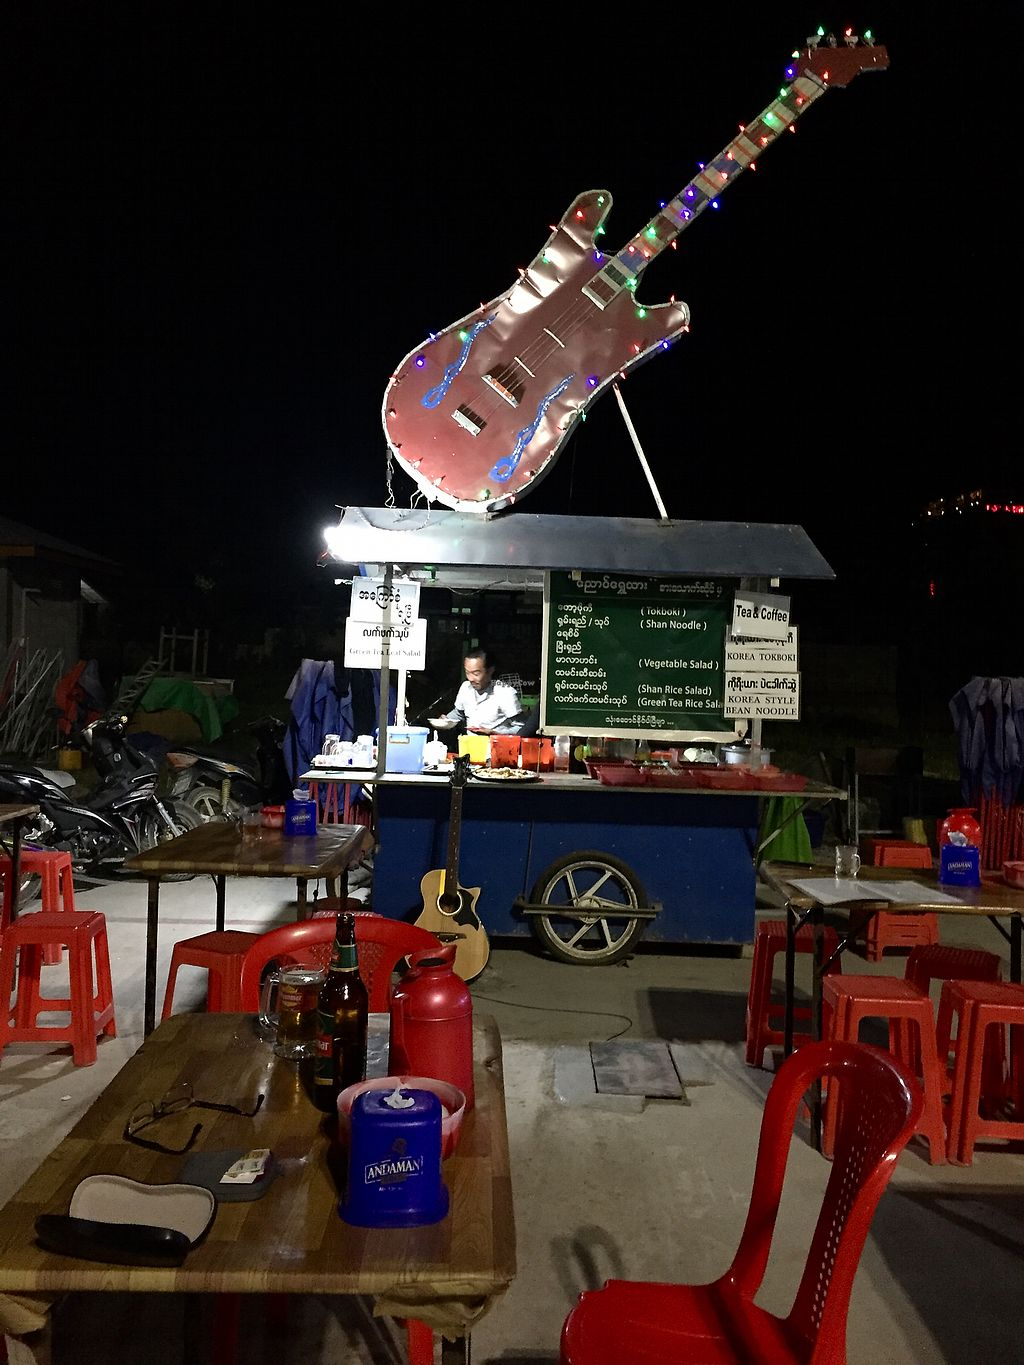 "Photo of Ngaung Shwe Thu  by <a href=""/members/profile/ElizabethCostello"">ElizabethCostello</a> <br/>Giant guitar! <br/> March 7, 2018  - <a href='/contact/abuse/image/98393/367747'>Report</a>"